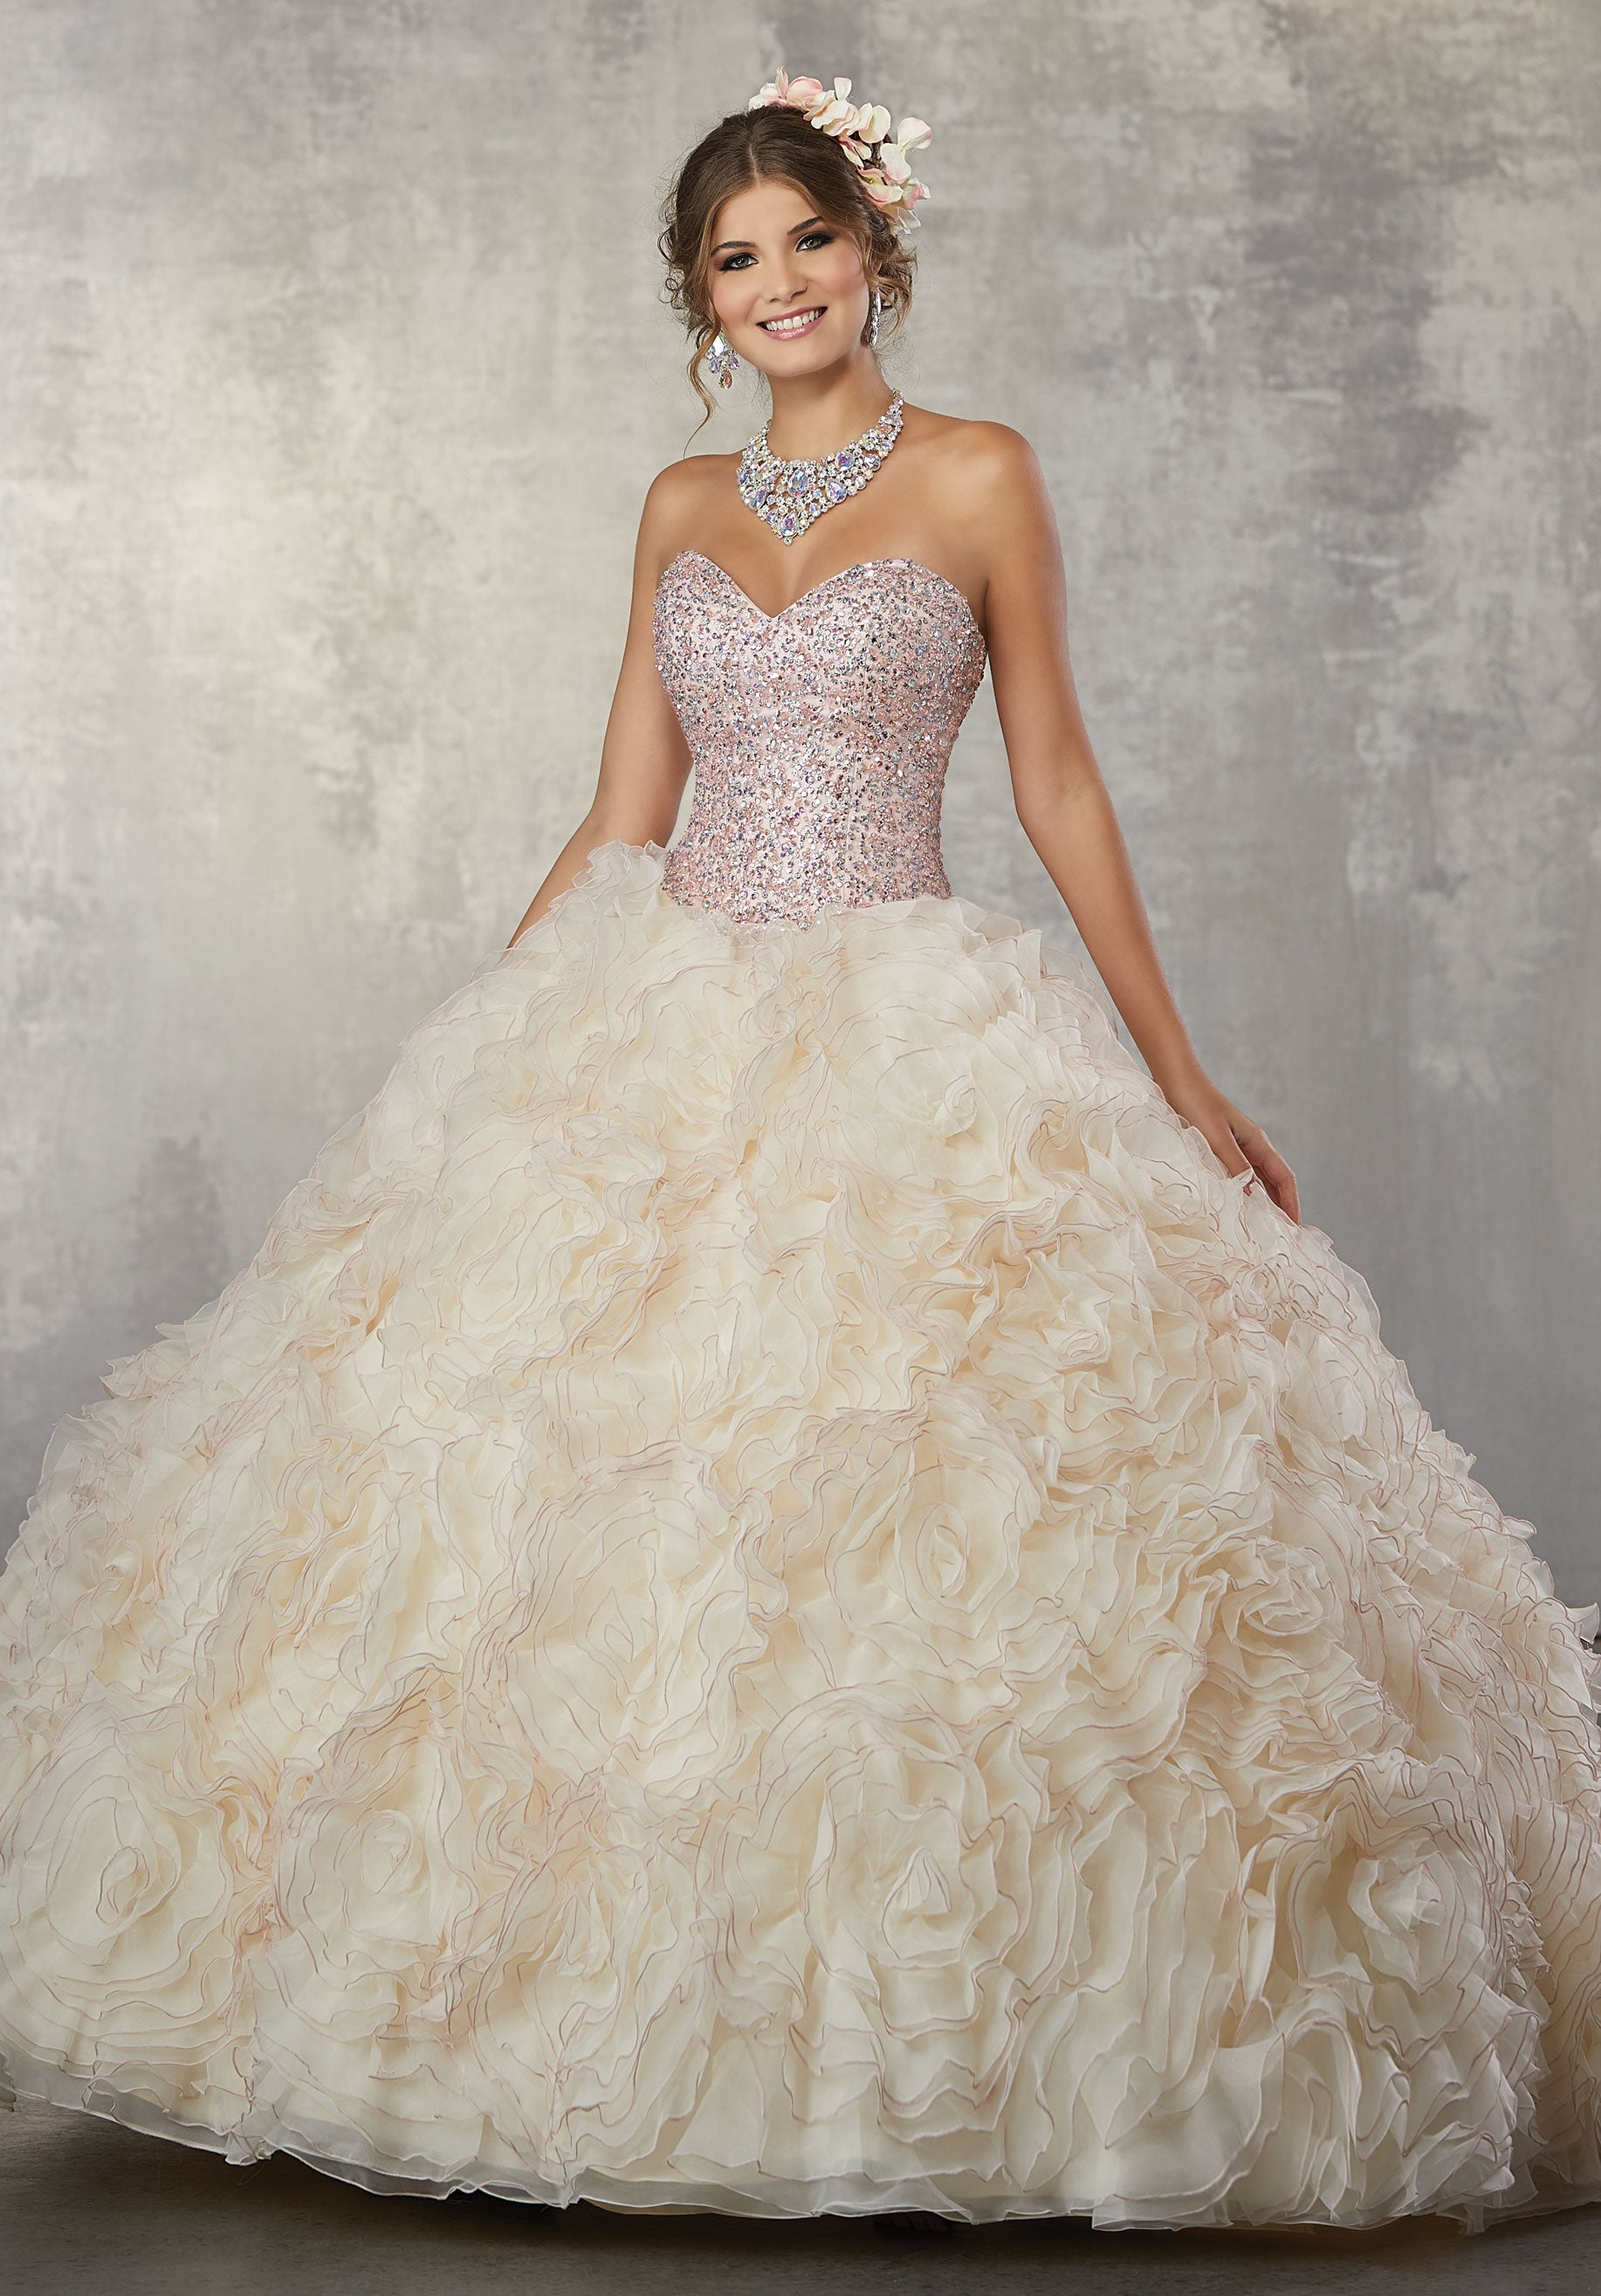 78062 Quinceañera Ballgown that Features a Fully Beaded Sweetheart ...